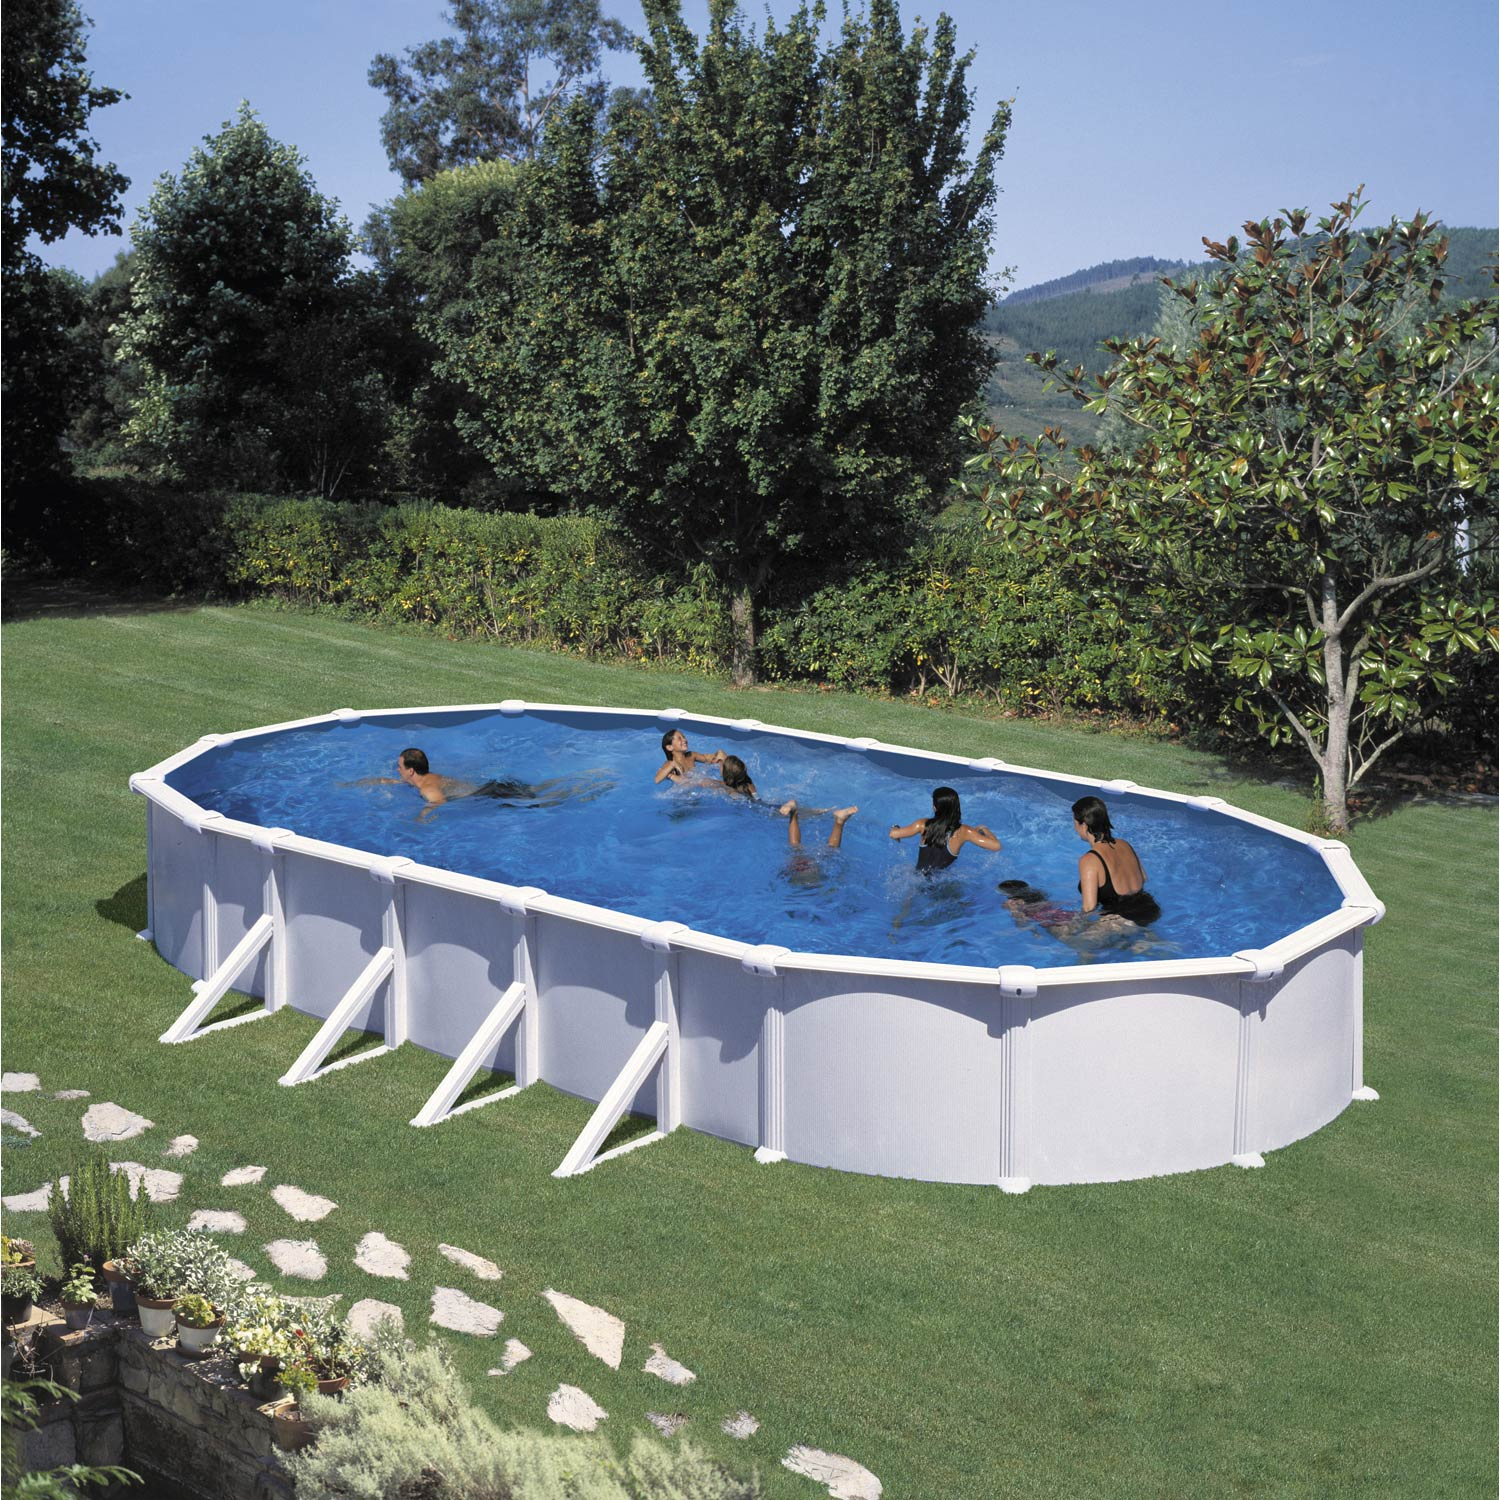 Piscine semi enterre leroy merlin beautiful with piscine for Piscine en bois leroy merlin